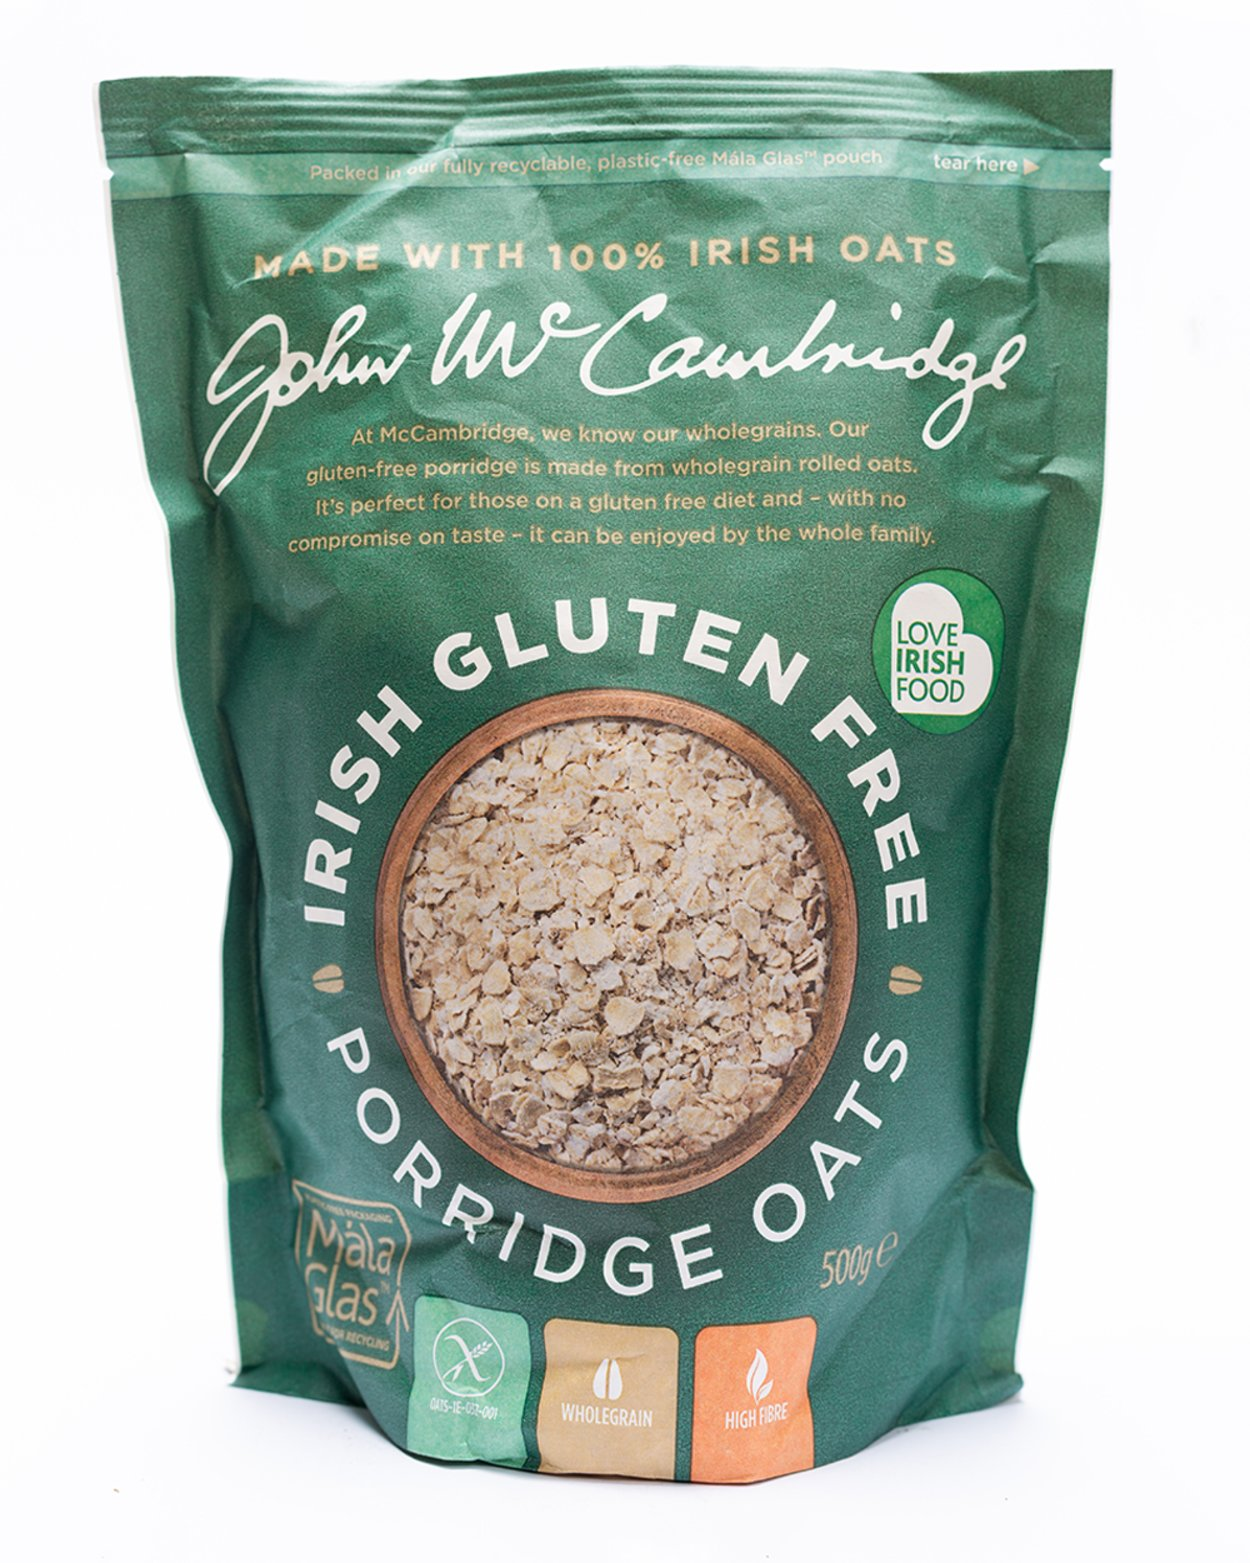 Mccambridges GF Porridge Oats